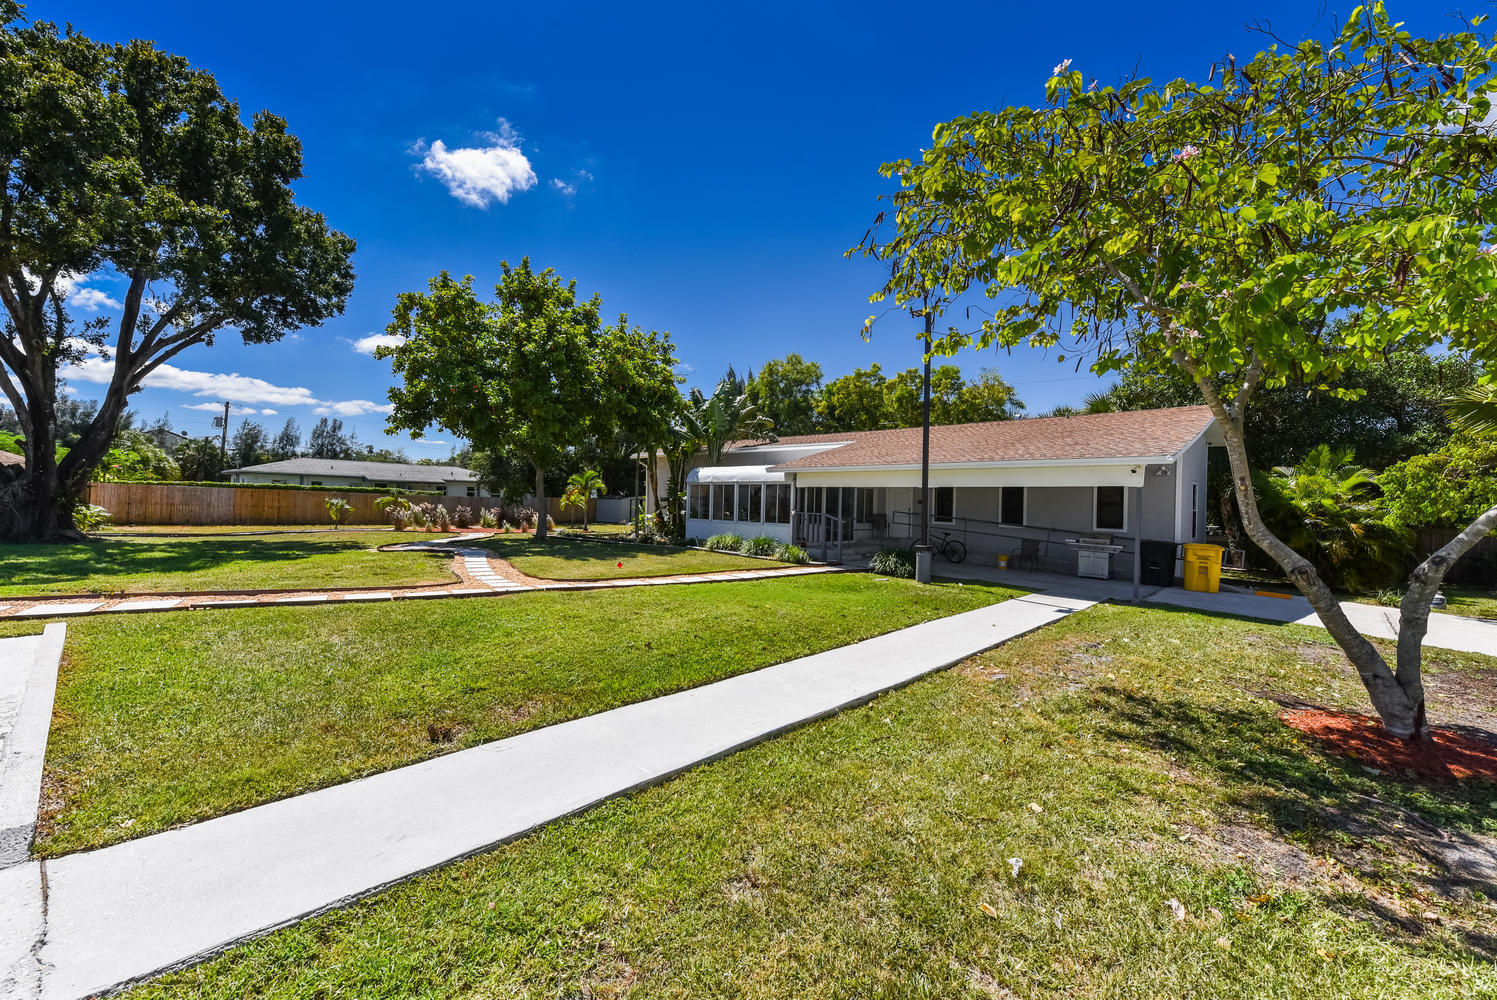 ACREAGE HOMES FOR SALE